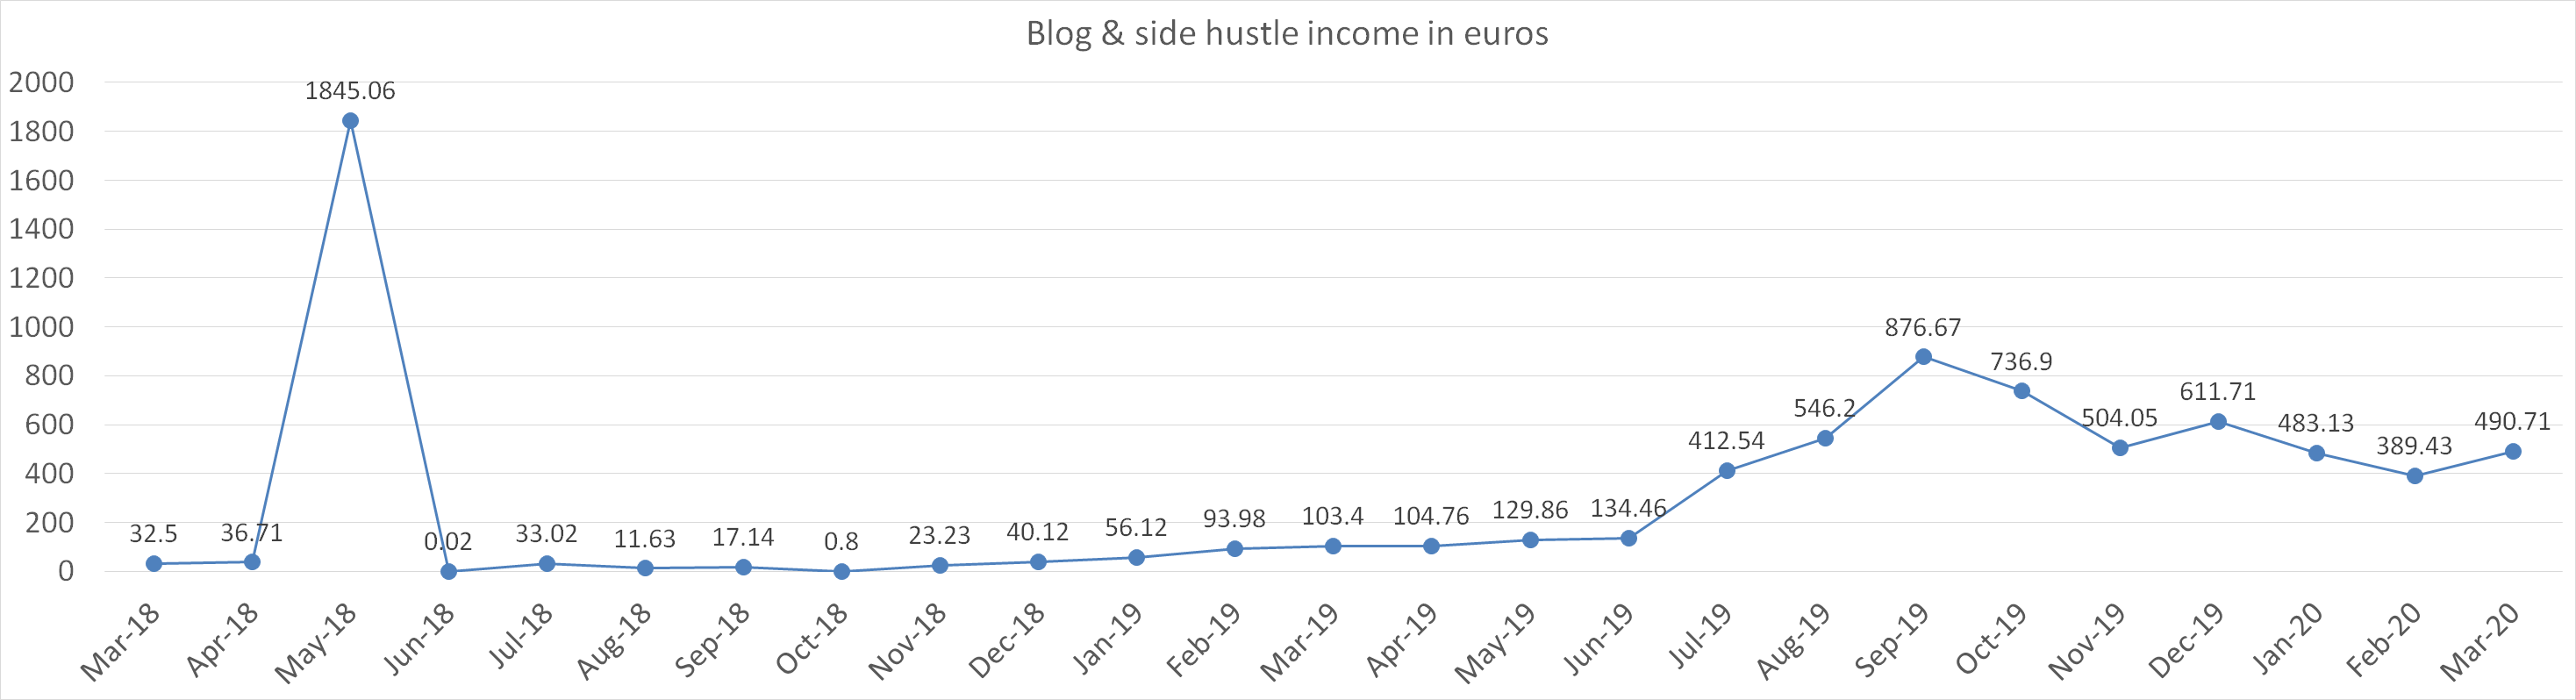 Blog & side hustle income in euros march 2020